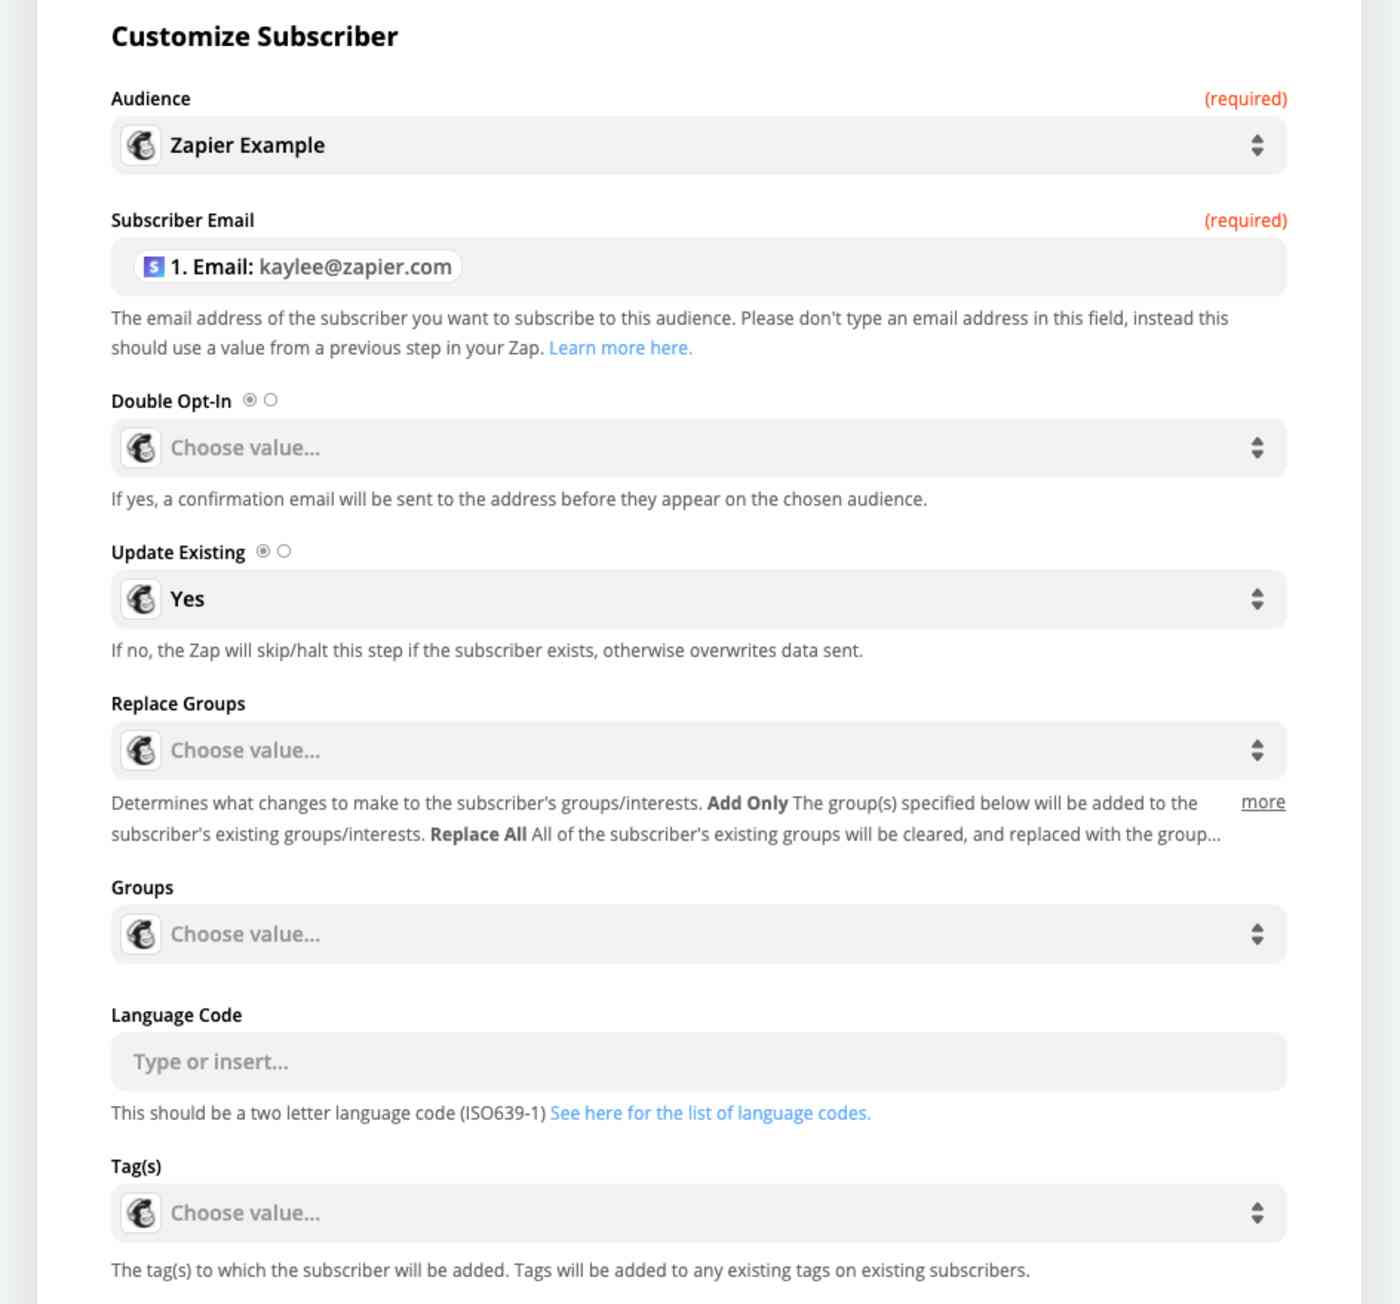 Customize your Mailchimp action step choosing tags, inserting their name, email address, and more.